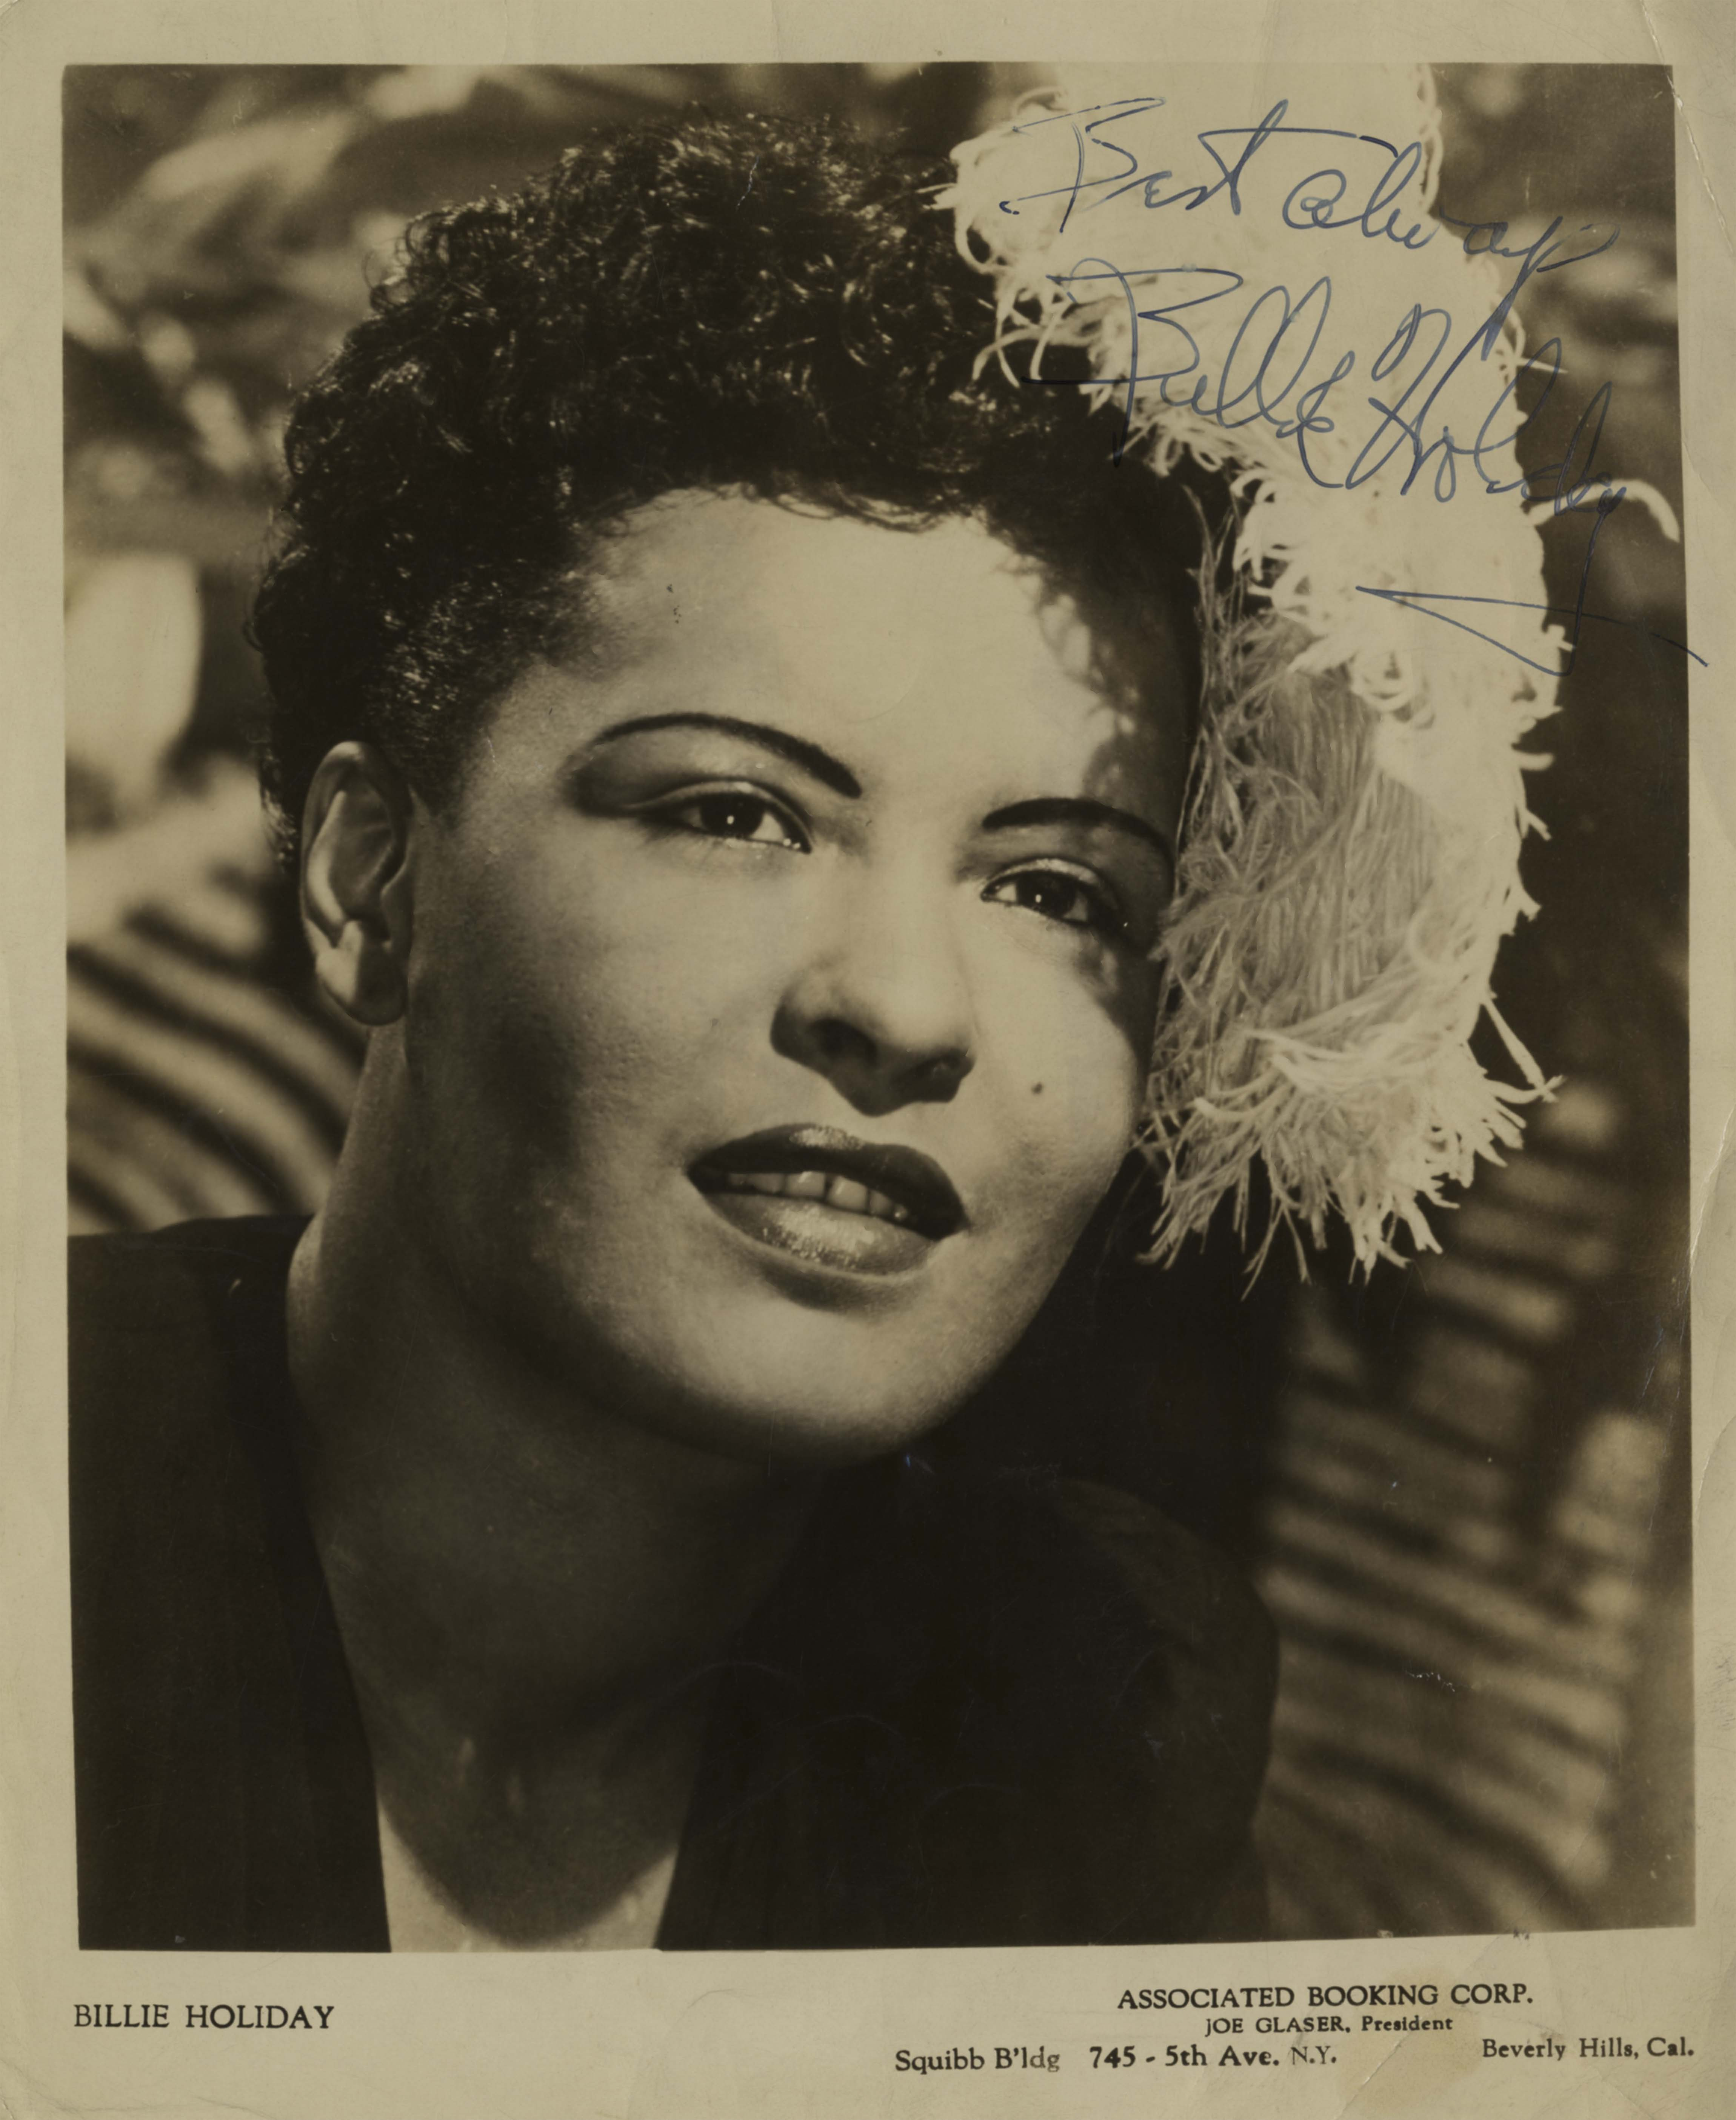 Billie Holiday Billie Holiday Autograph On Her Photo Sells For 3 750 At